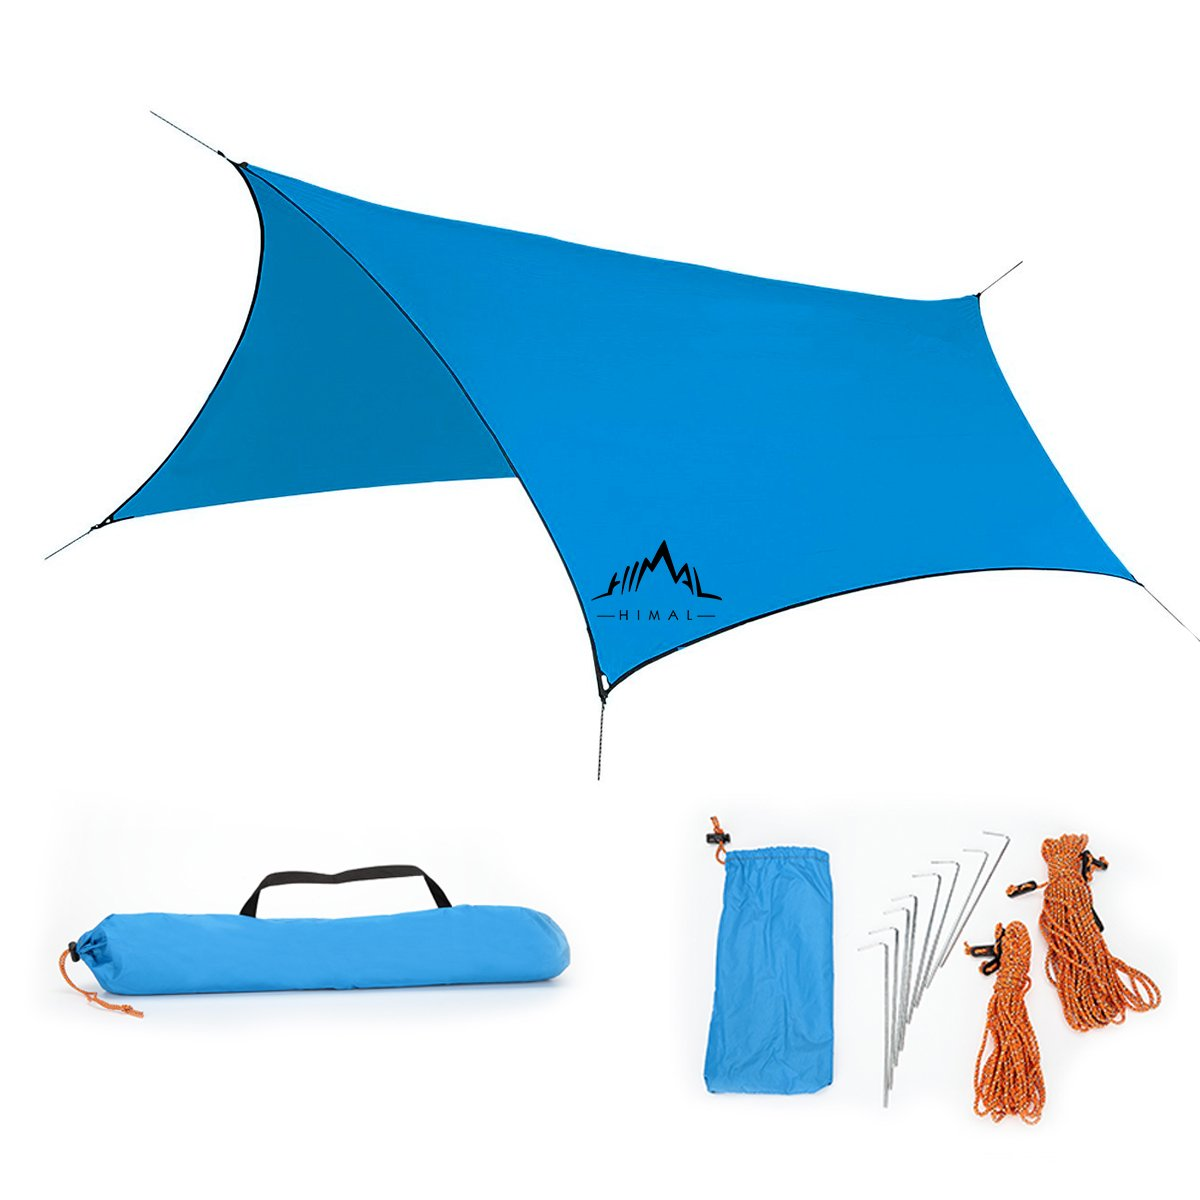 Amazon.com  [C&ing Essential] Himal 10ftX8.5ft Waterproof Sunshade Tent Rain Fly Tent Tarp (Blue)  Sports u0026 Outdoors  sc 1 st  Amazon.com & Amazon.com : [Camping Essential] Himal 10ftX8.5ft Waterproof ...